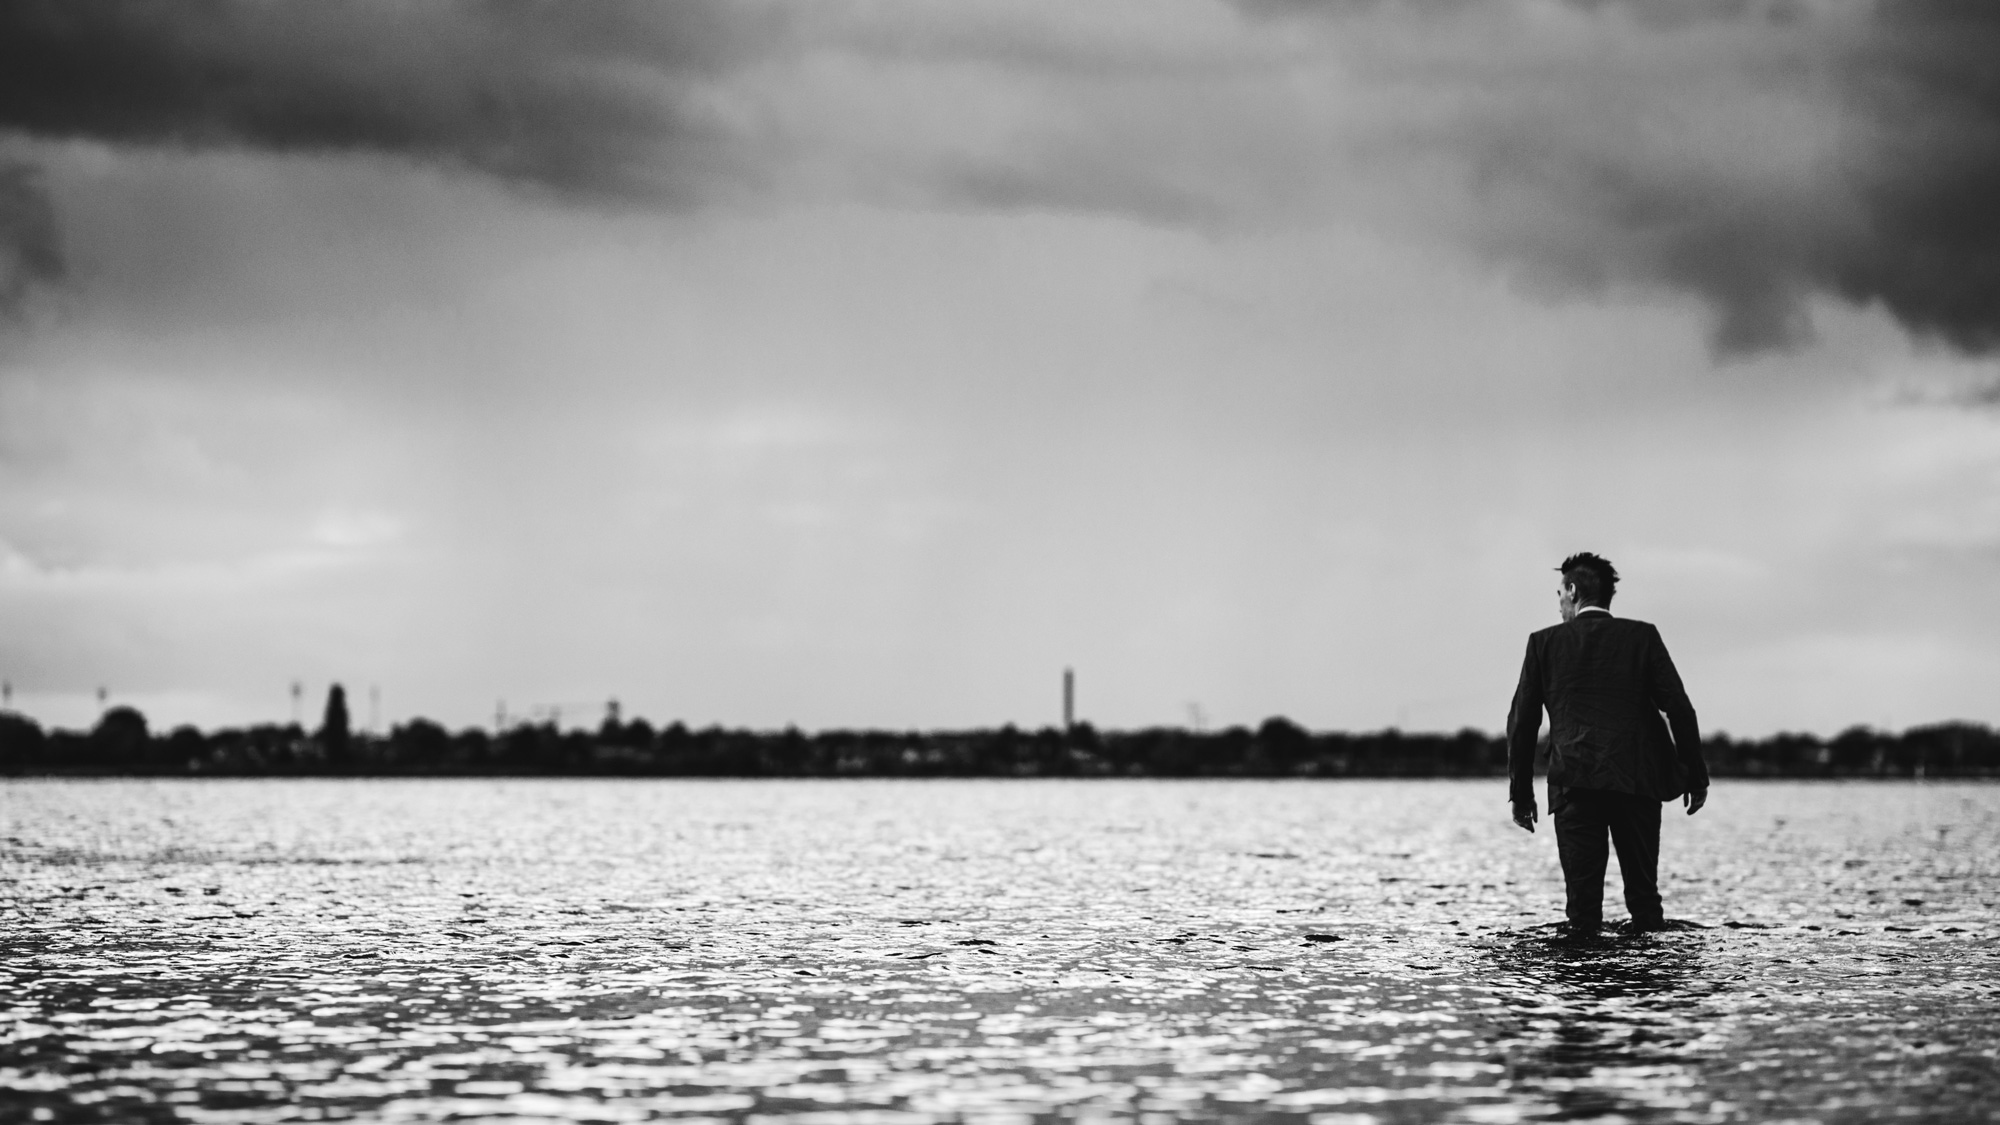 suit-man-watershoot-black-and-white